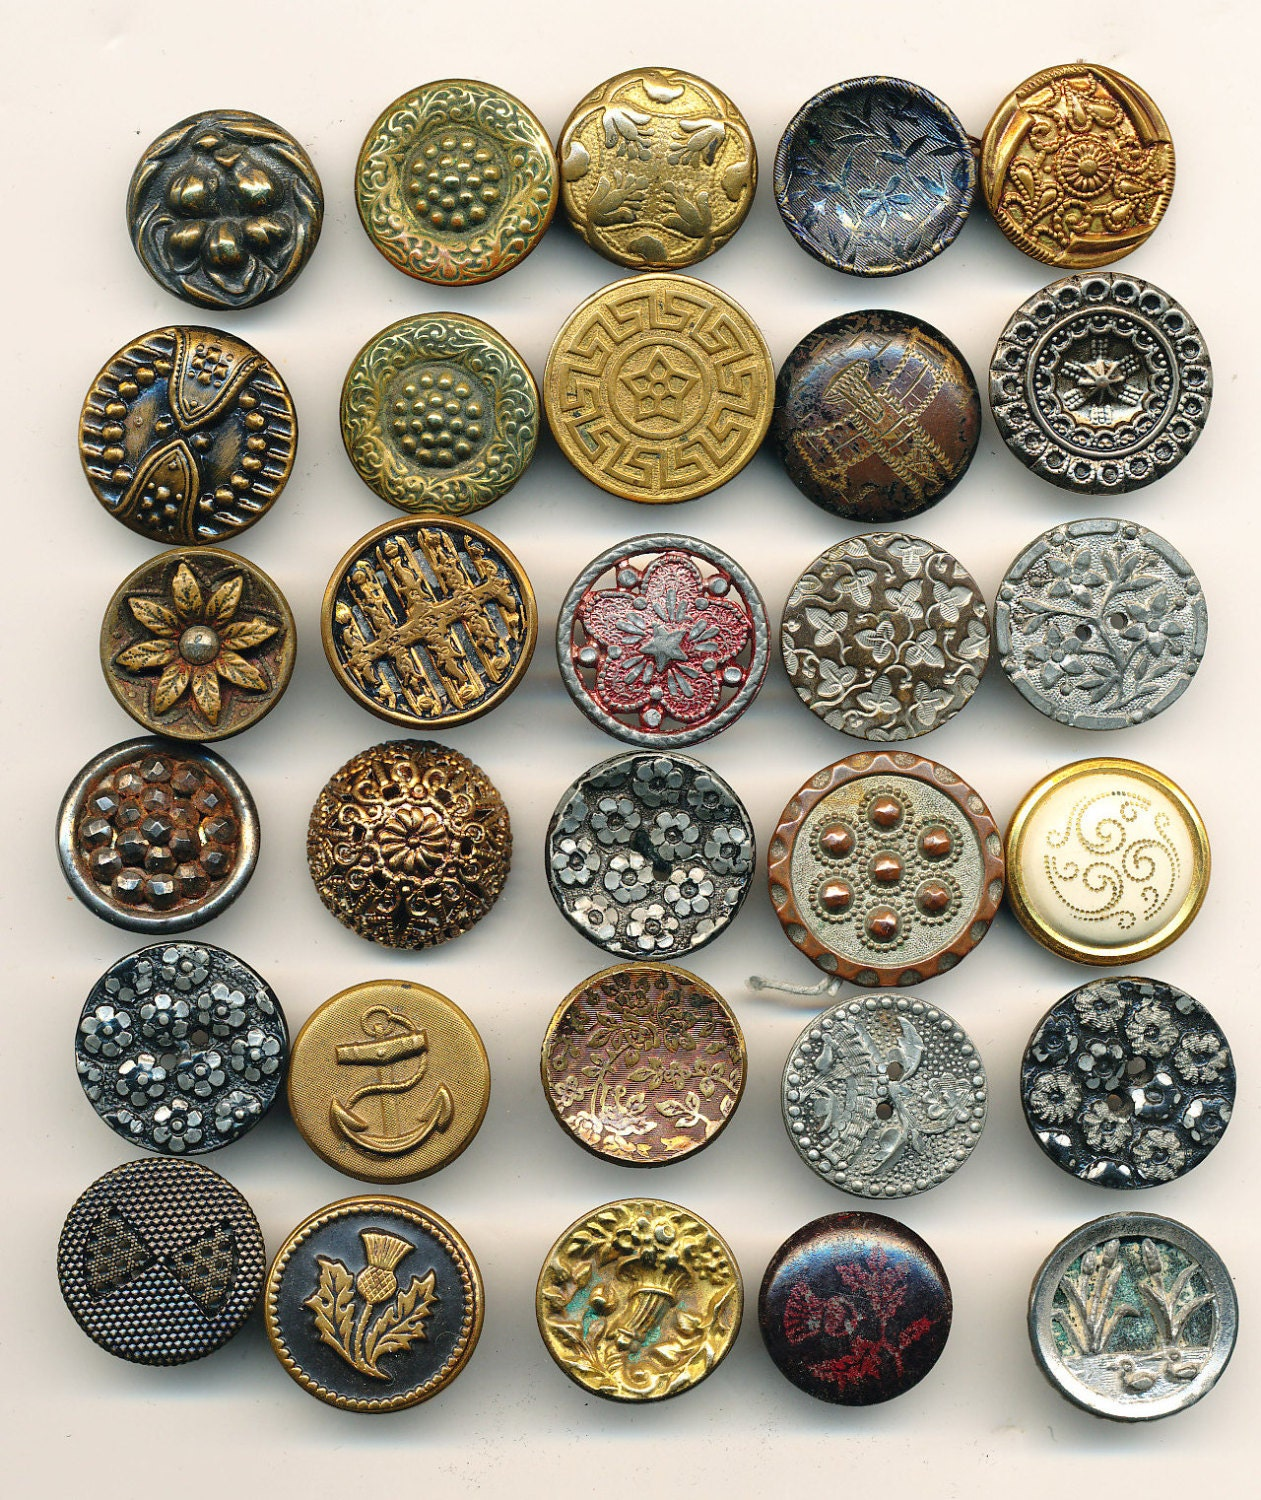 dating old metal buttons Our extensive collection of metal buttons available in a wide variety of patterns and finishes.